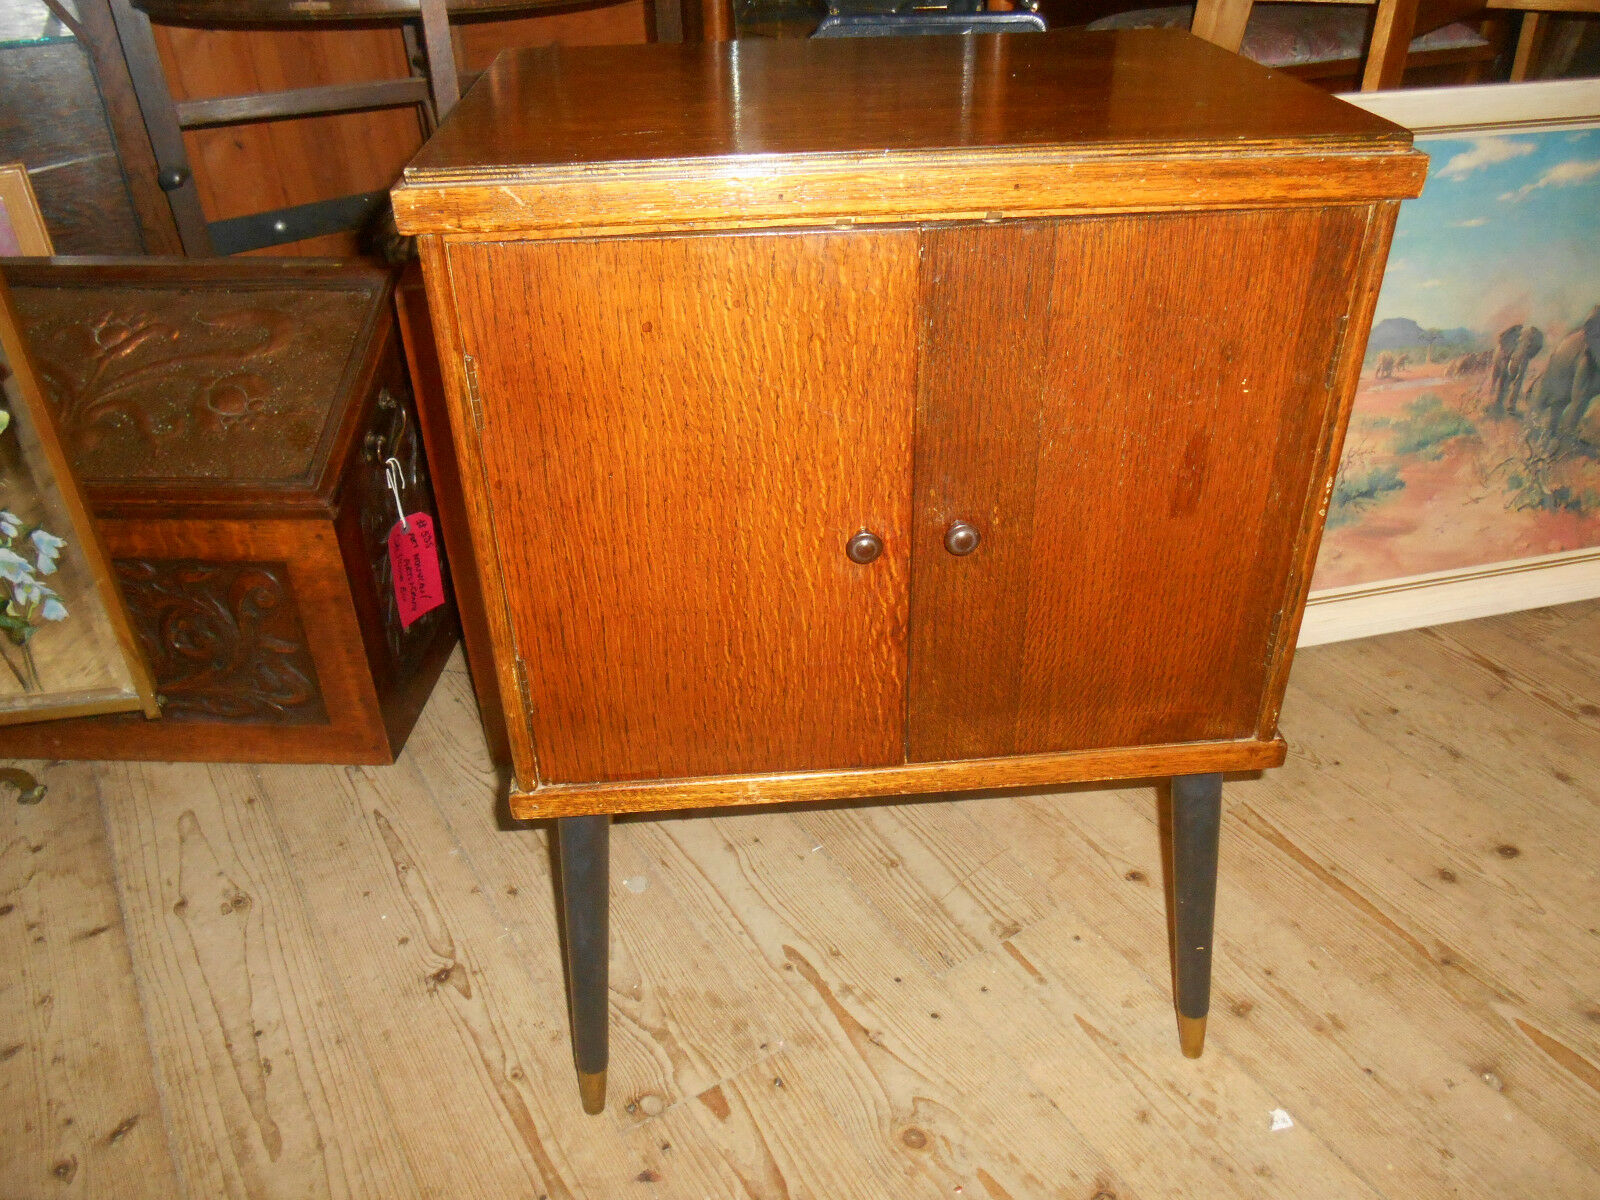 Vintage Retro Record Cabinet 1950s/ 60s Twin Doors Fitted Interior Dansette legs